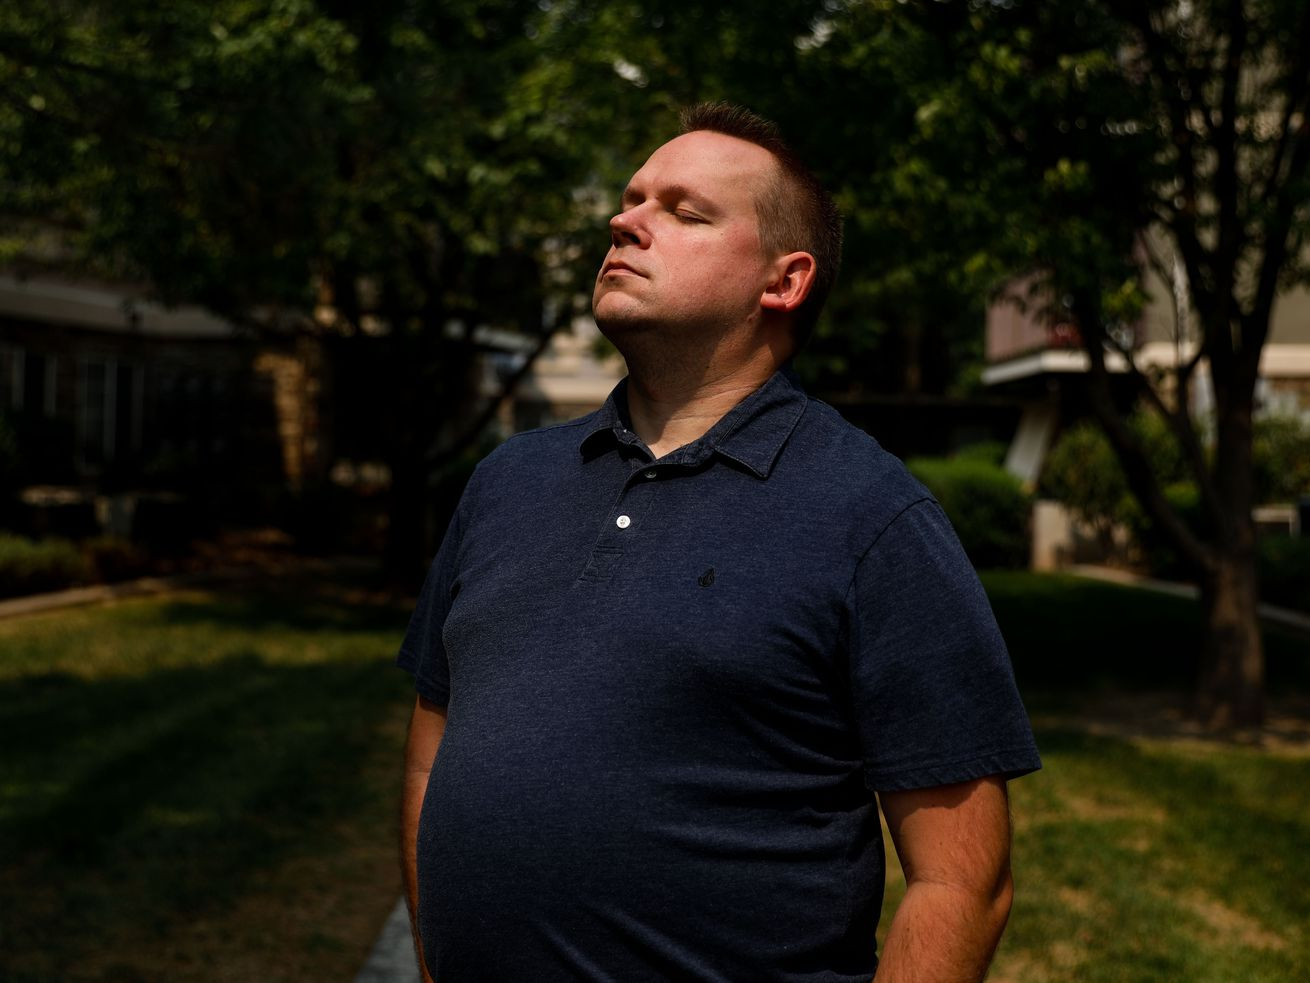 Spencer Casperson closes his eyes while posing for a portraitat his home in Bluffdale on Monday, Aug. 30, 2021.